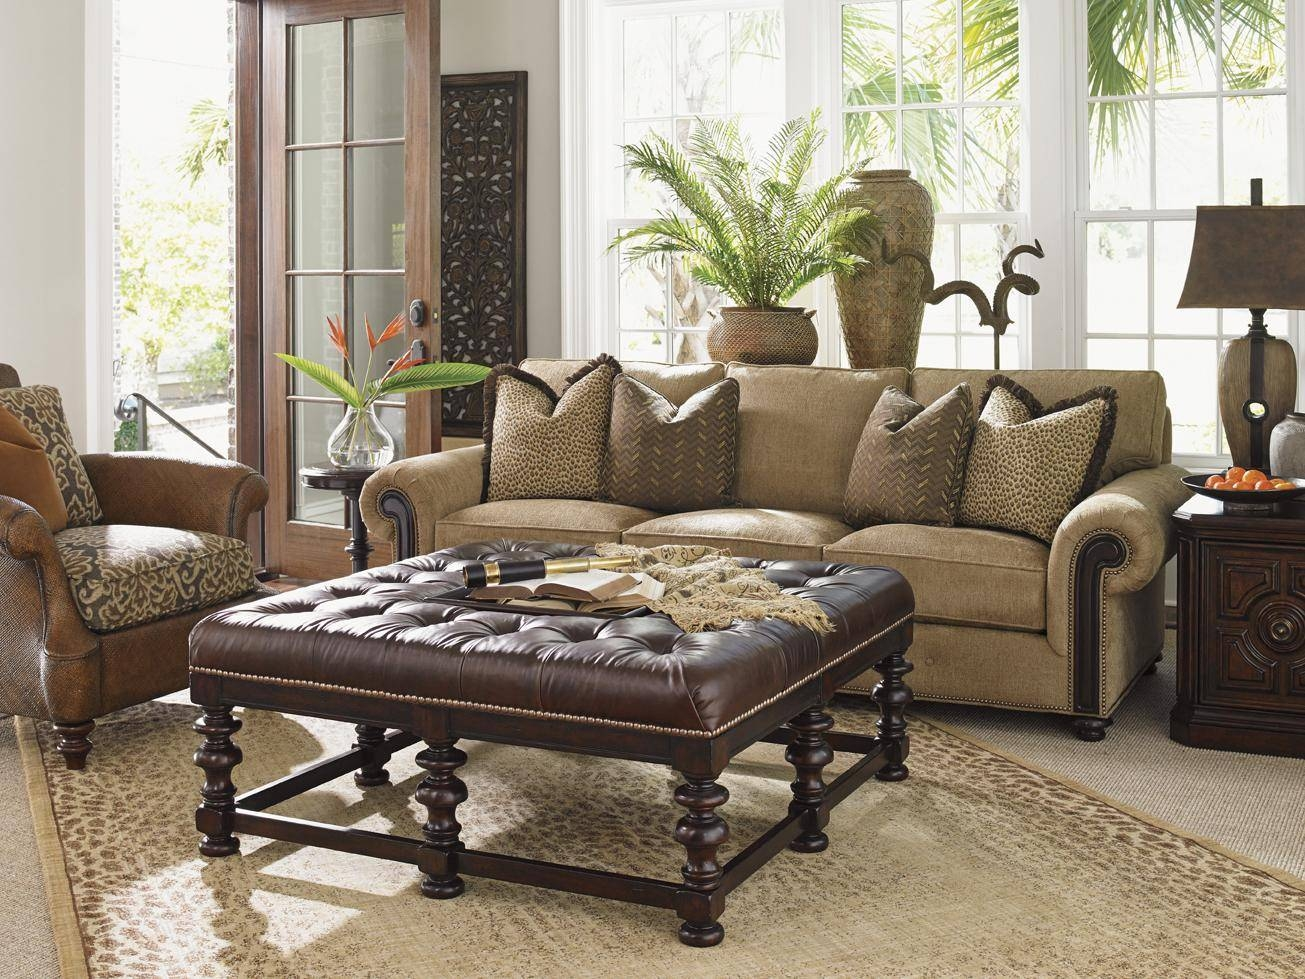 Tommy Bahama Home Kilimanjaro Heather Button-Tufted Cocktail intended for Animal Print Ottoman Coffee Tables (Image 28 of 30)